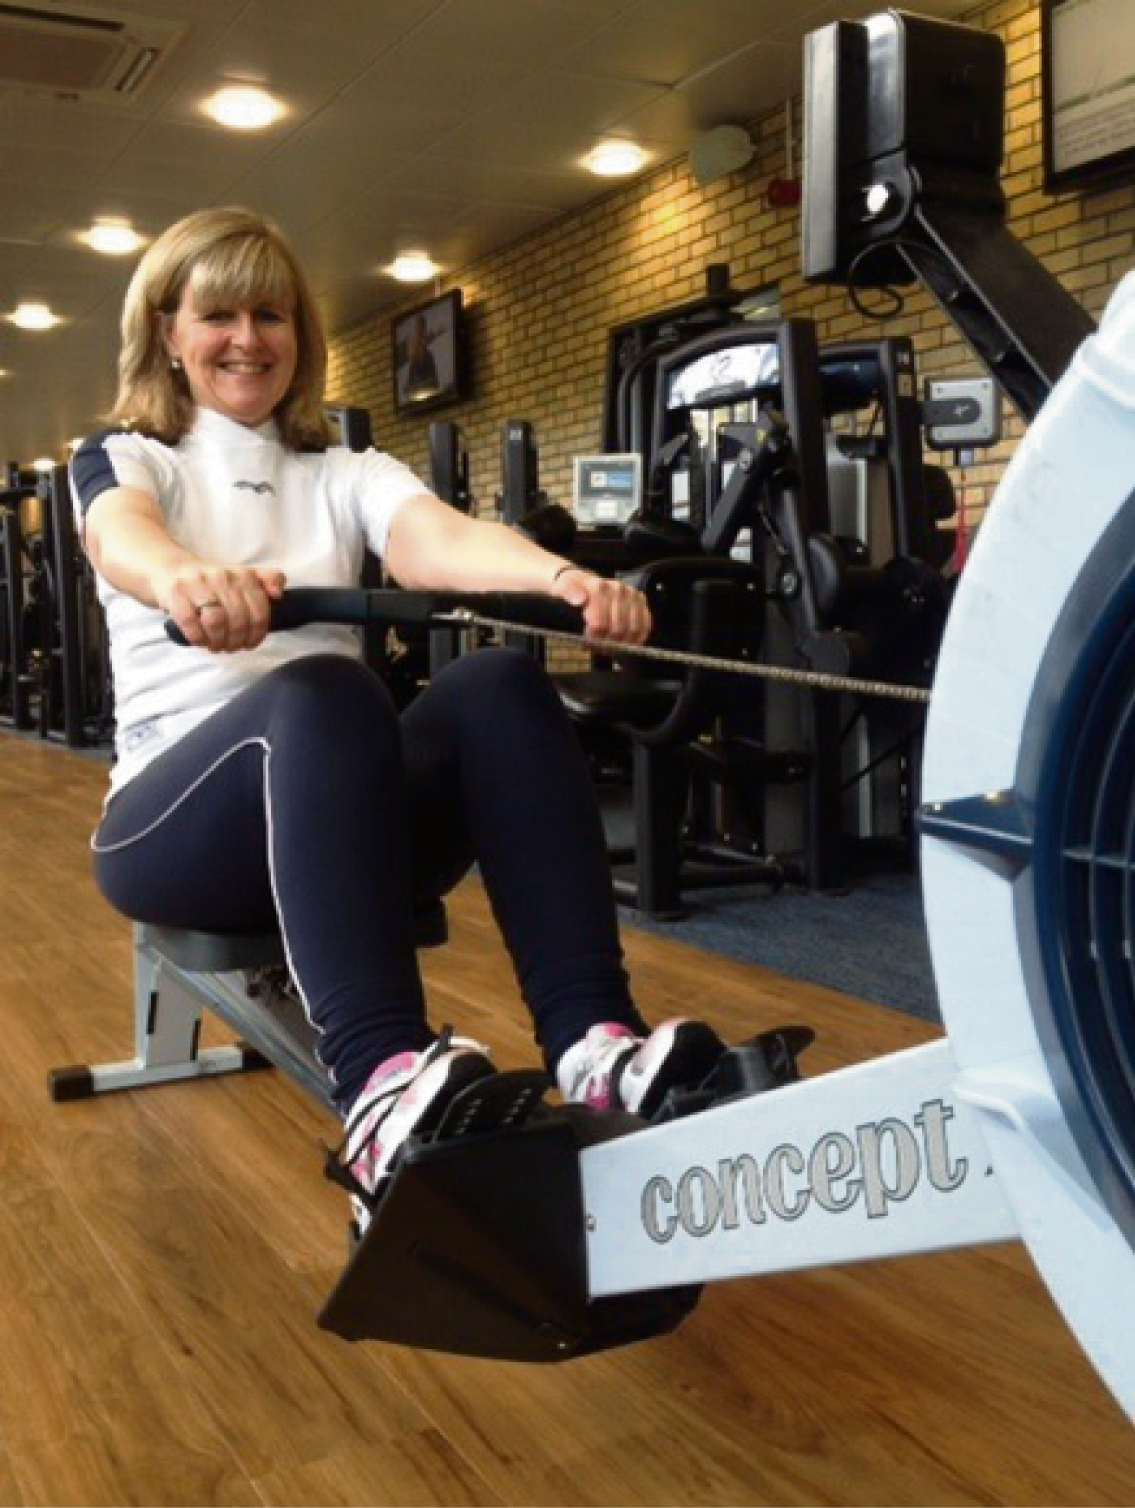 Rowing a marathon for charity